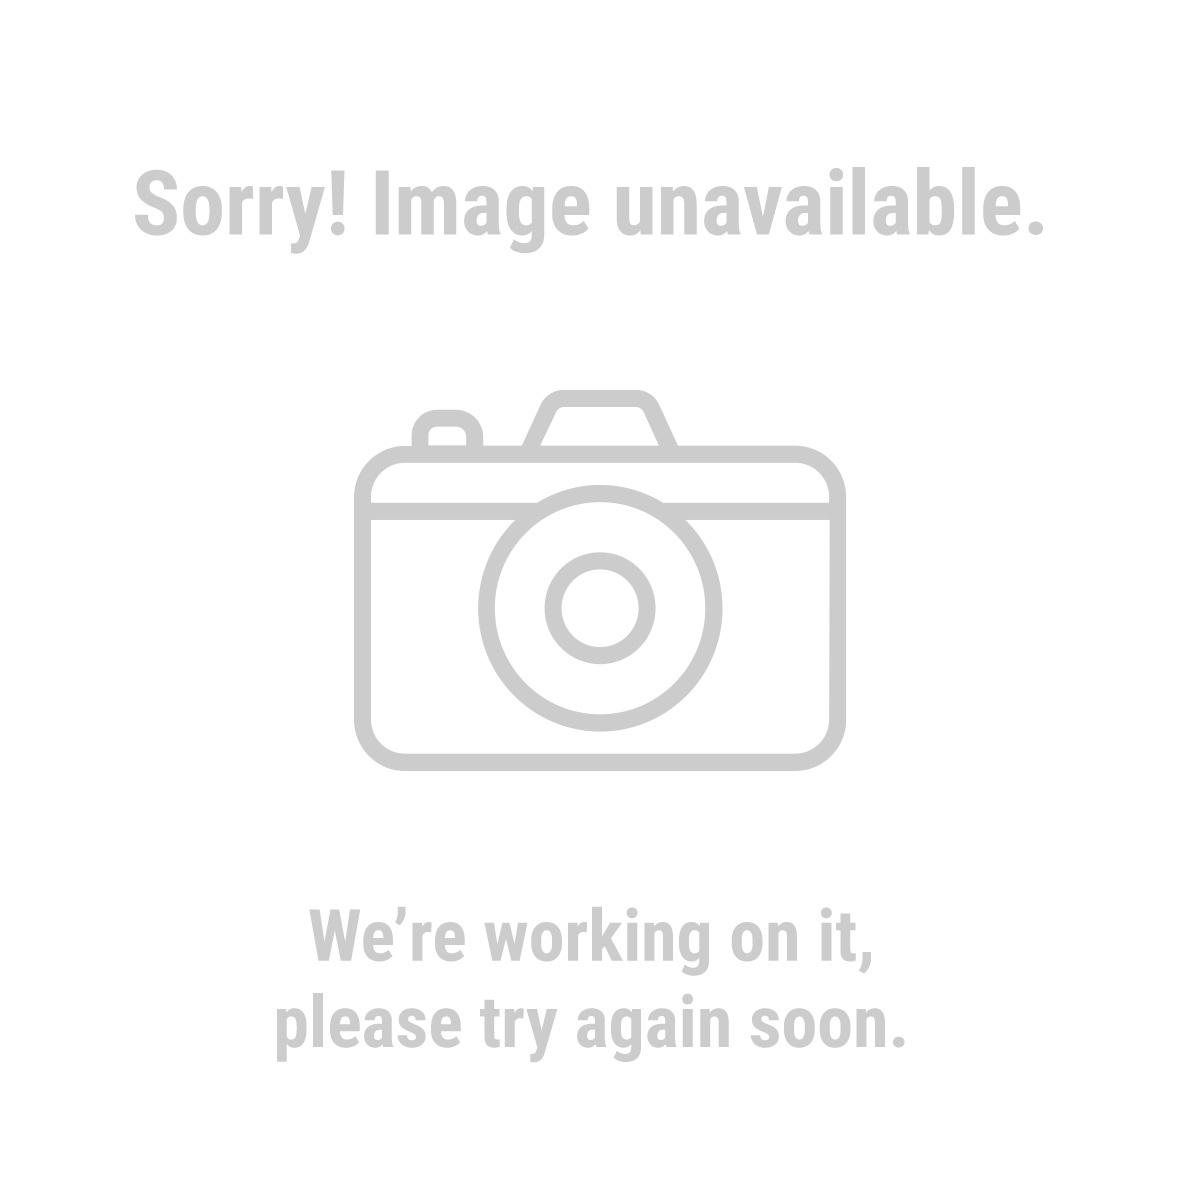 Bunker Hill Security® 69643 60 LED Solar Security Light